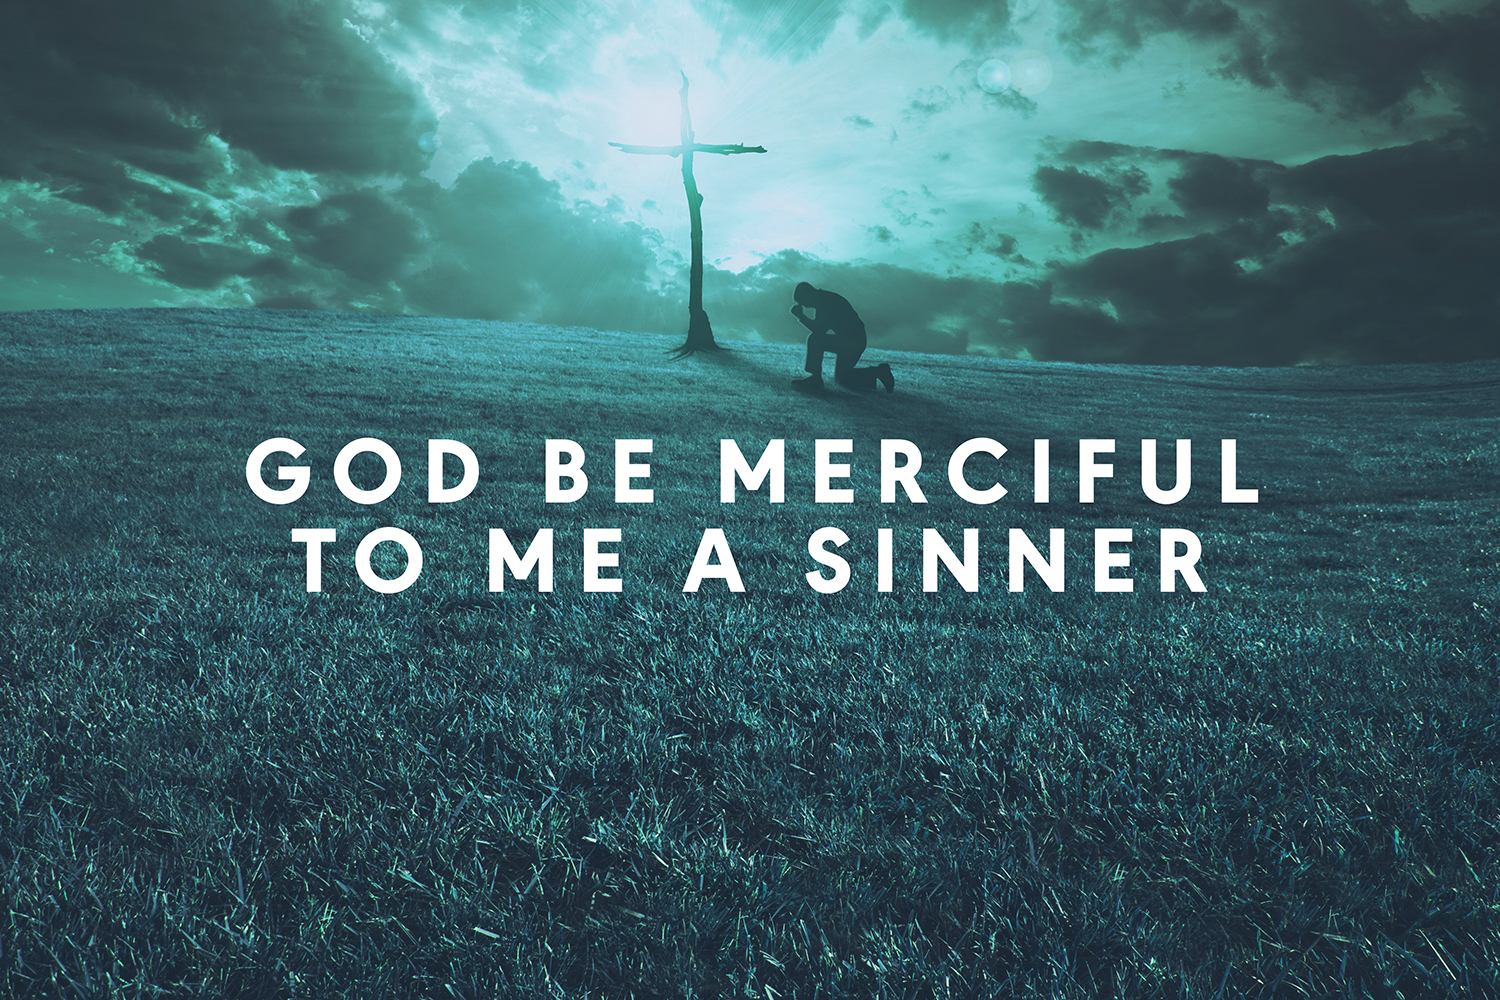 God be merciful to me a sinner